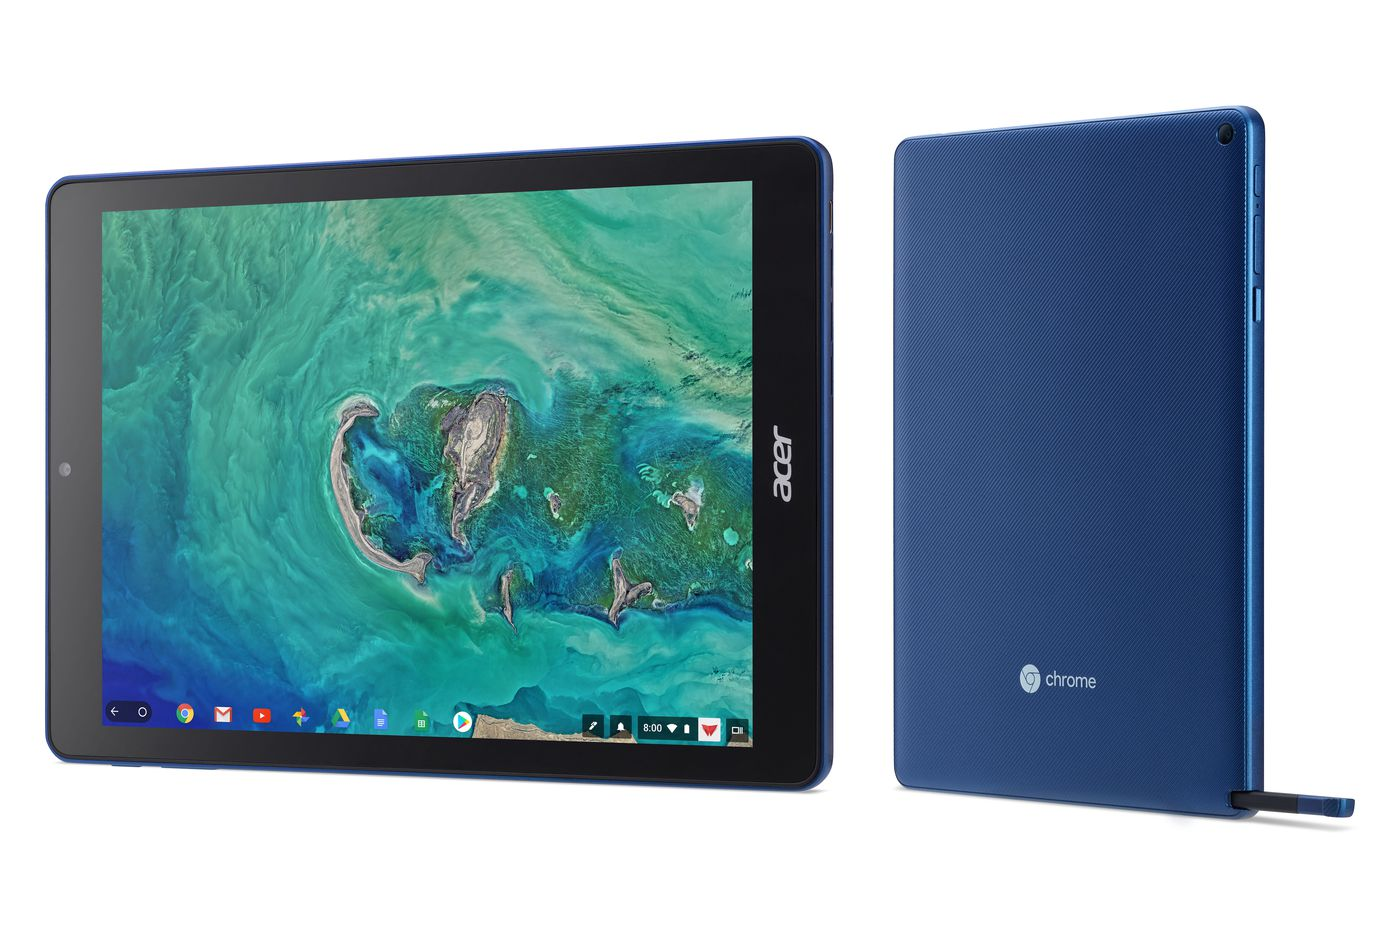 The Verge introduces Chrome OS Tablets.